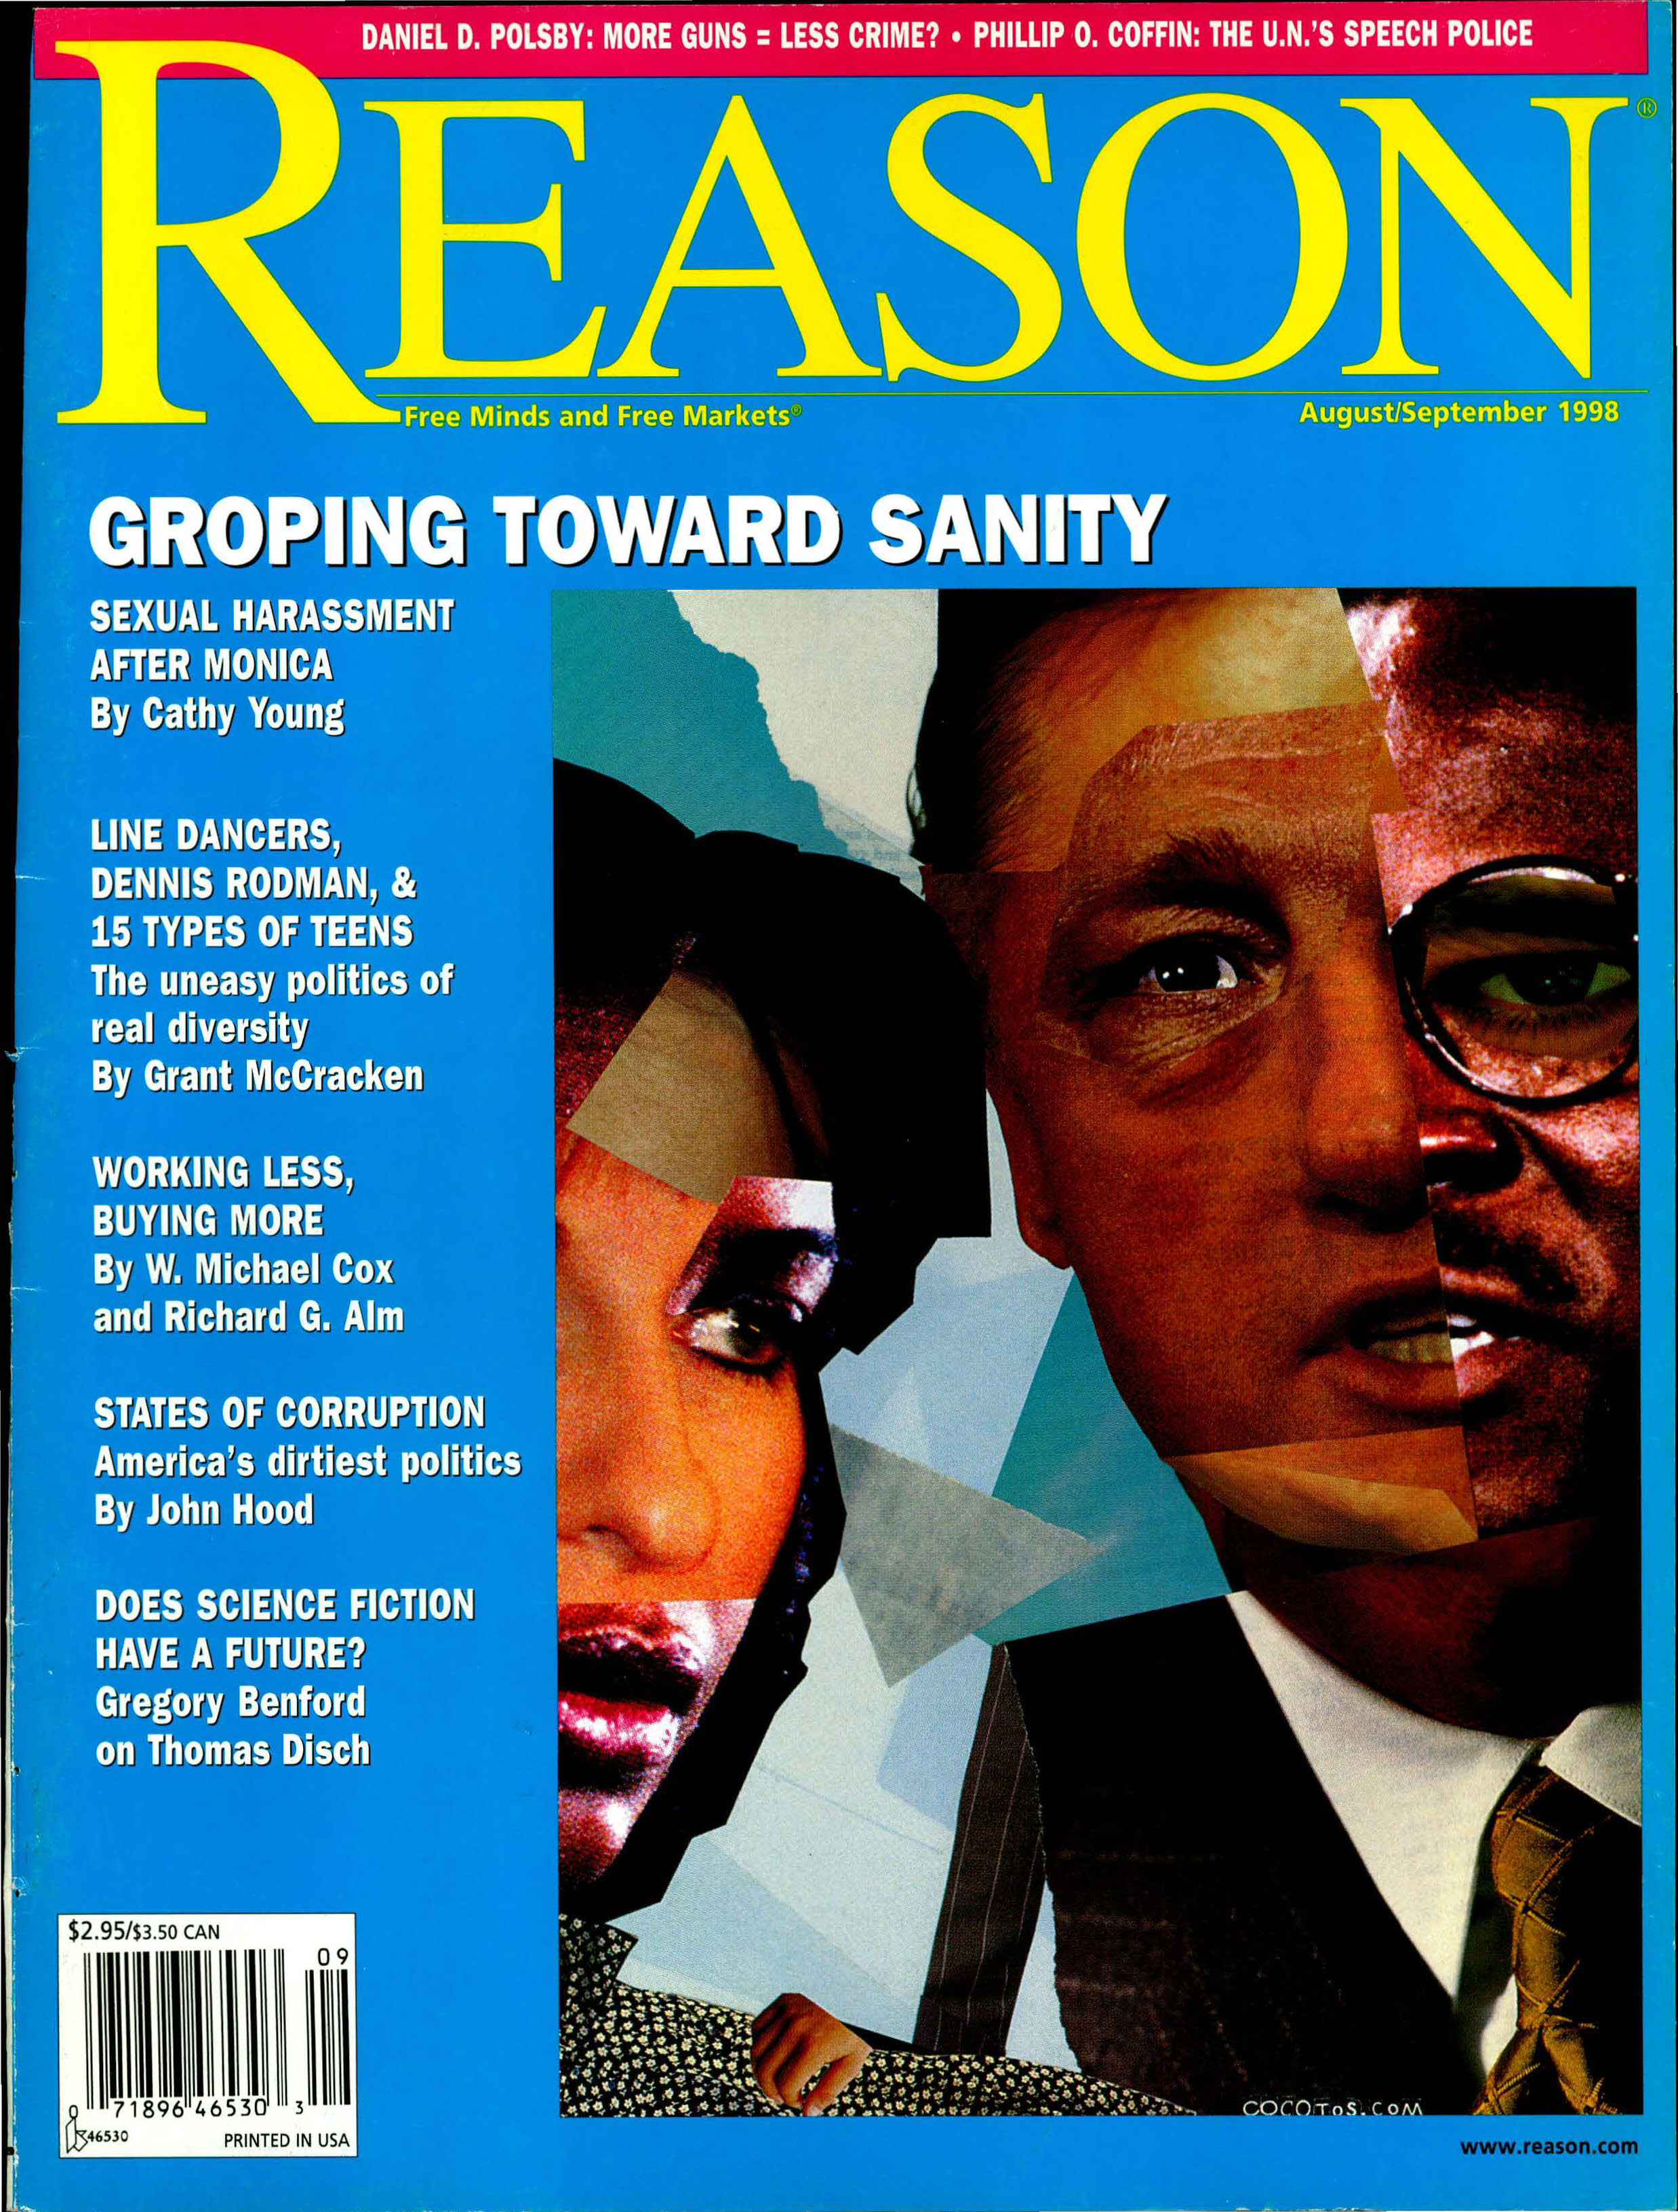 Reason Magazine, August/September 1998 cover image